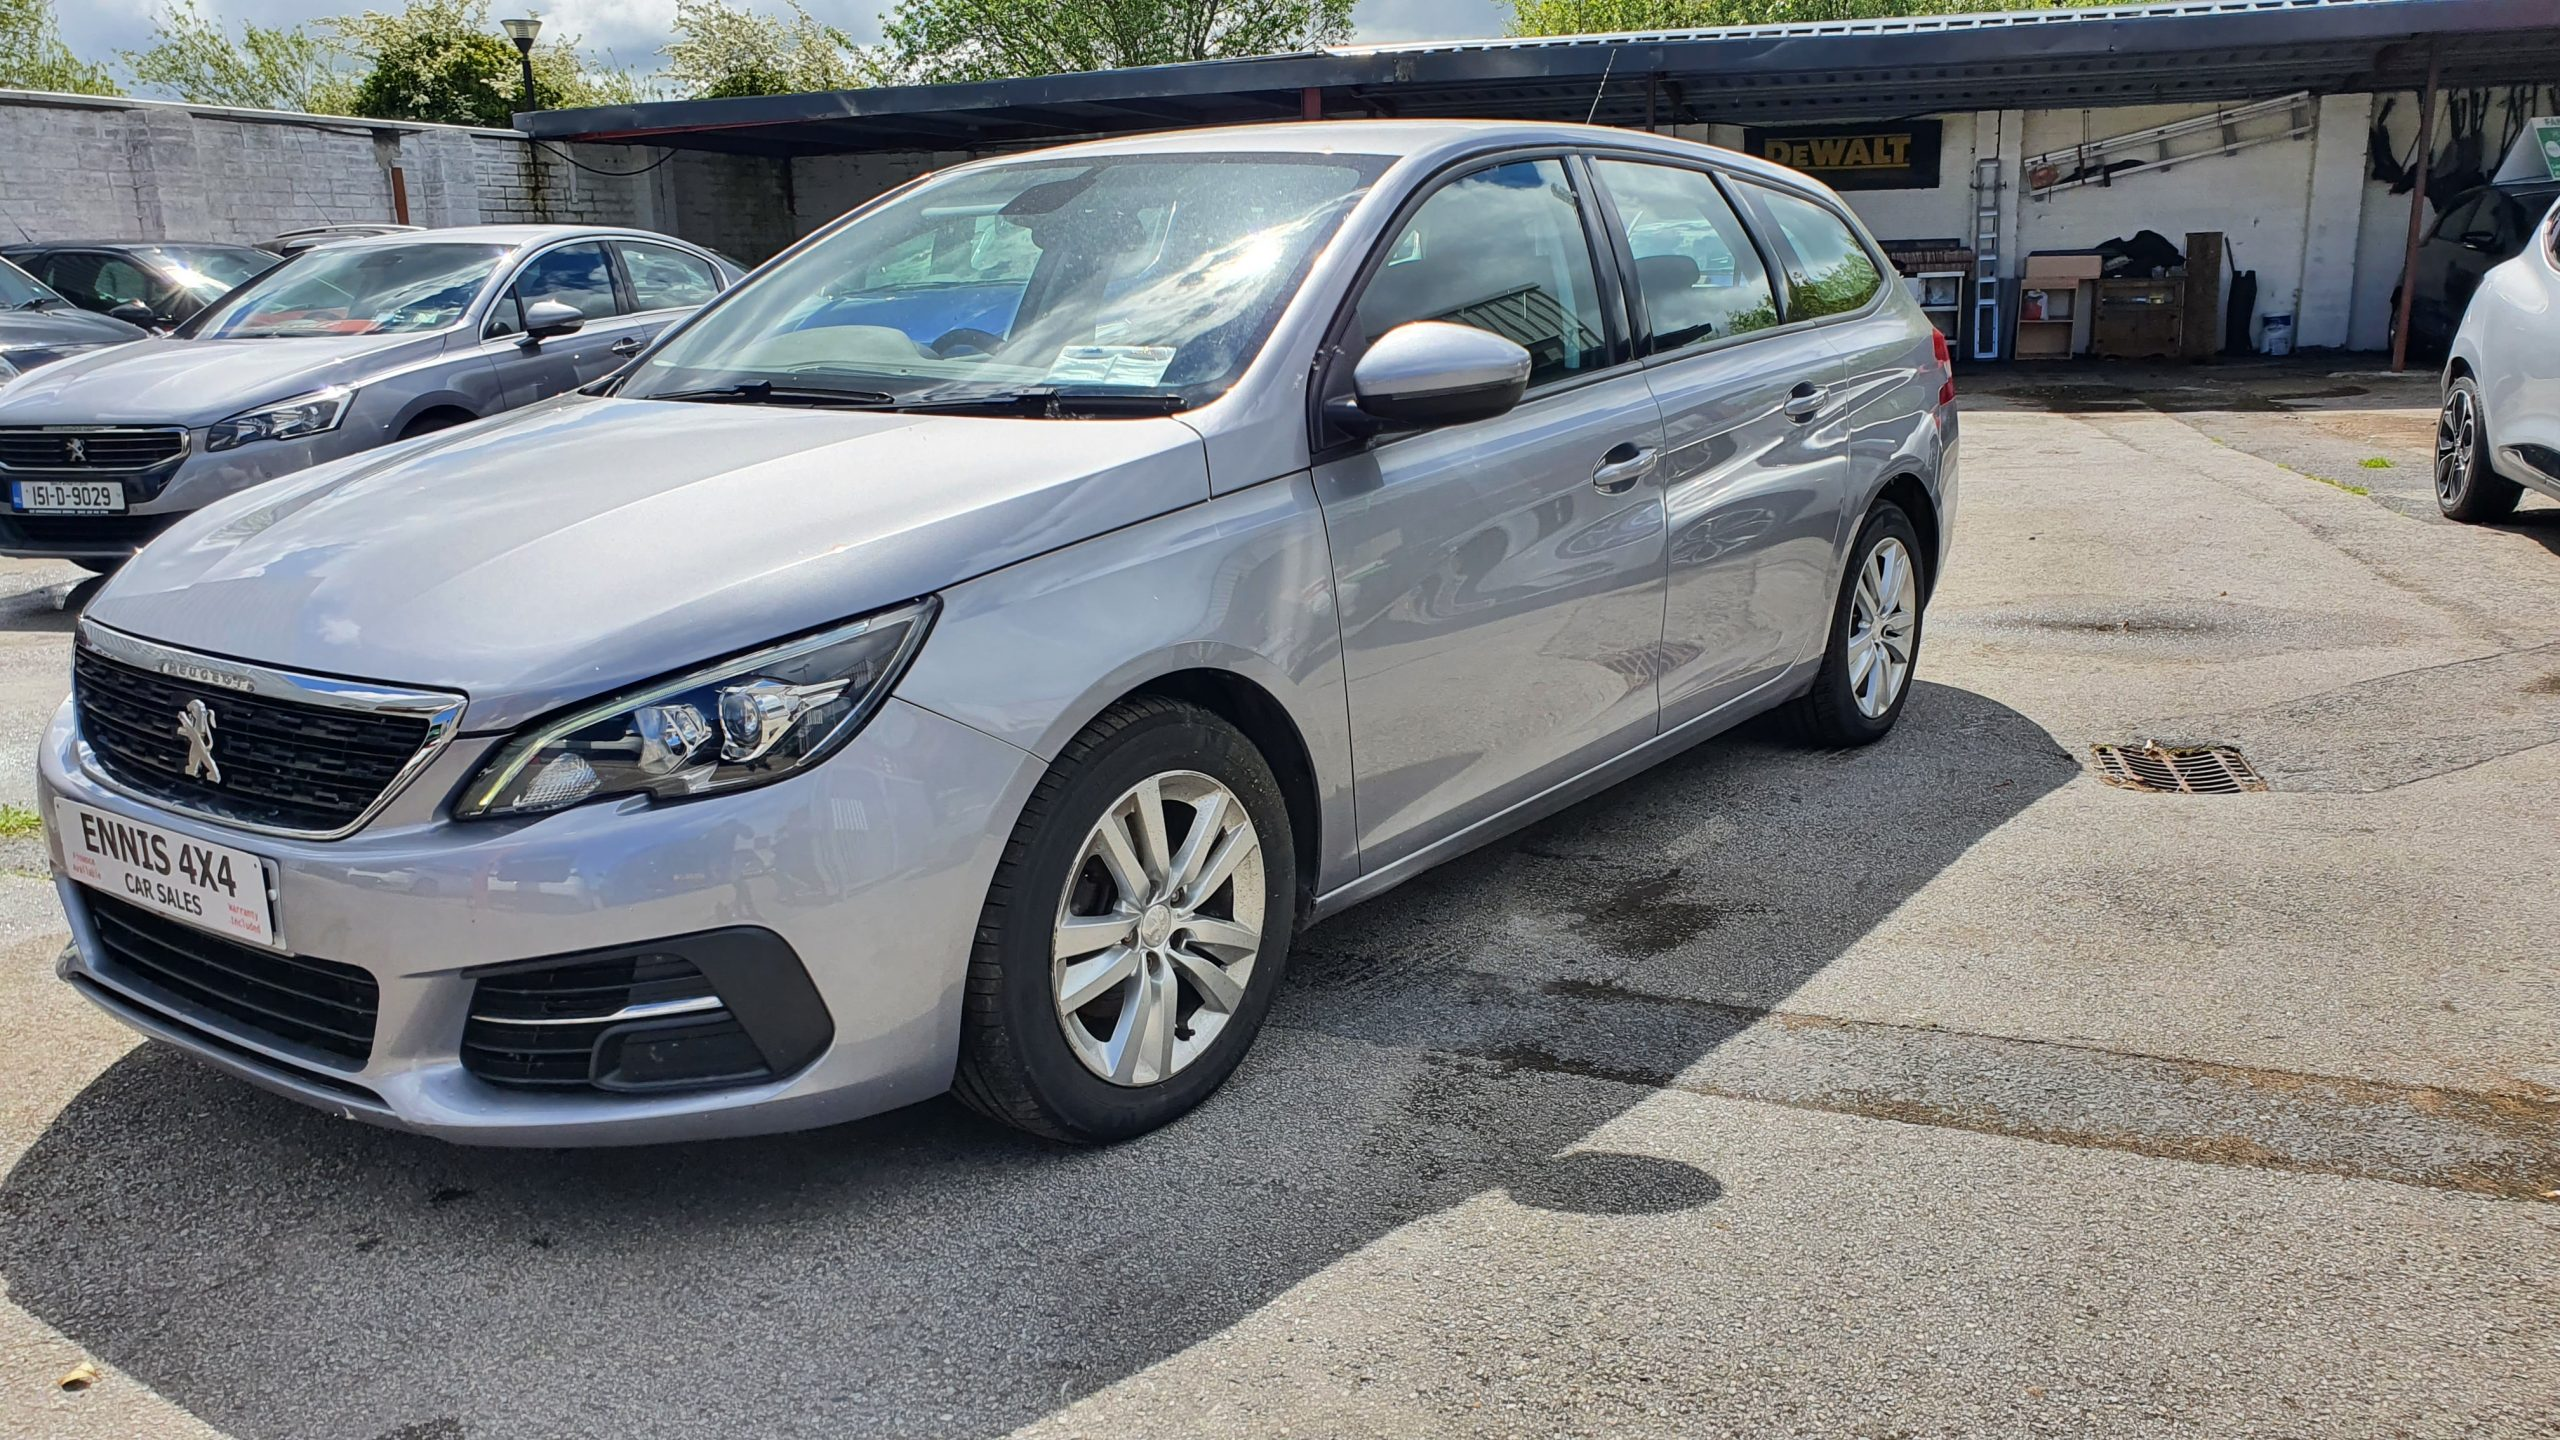 Peugeot 308 1.6 HDI sw Active 2018 Image